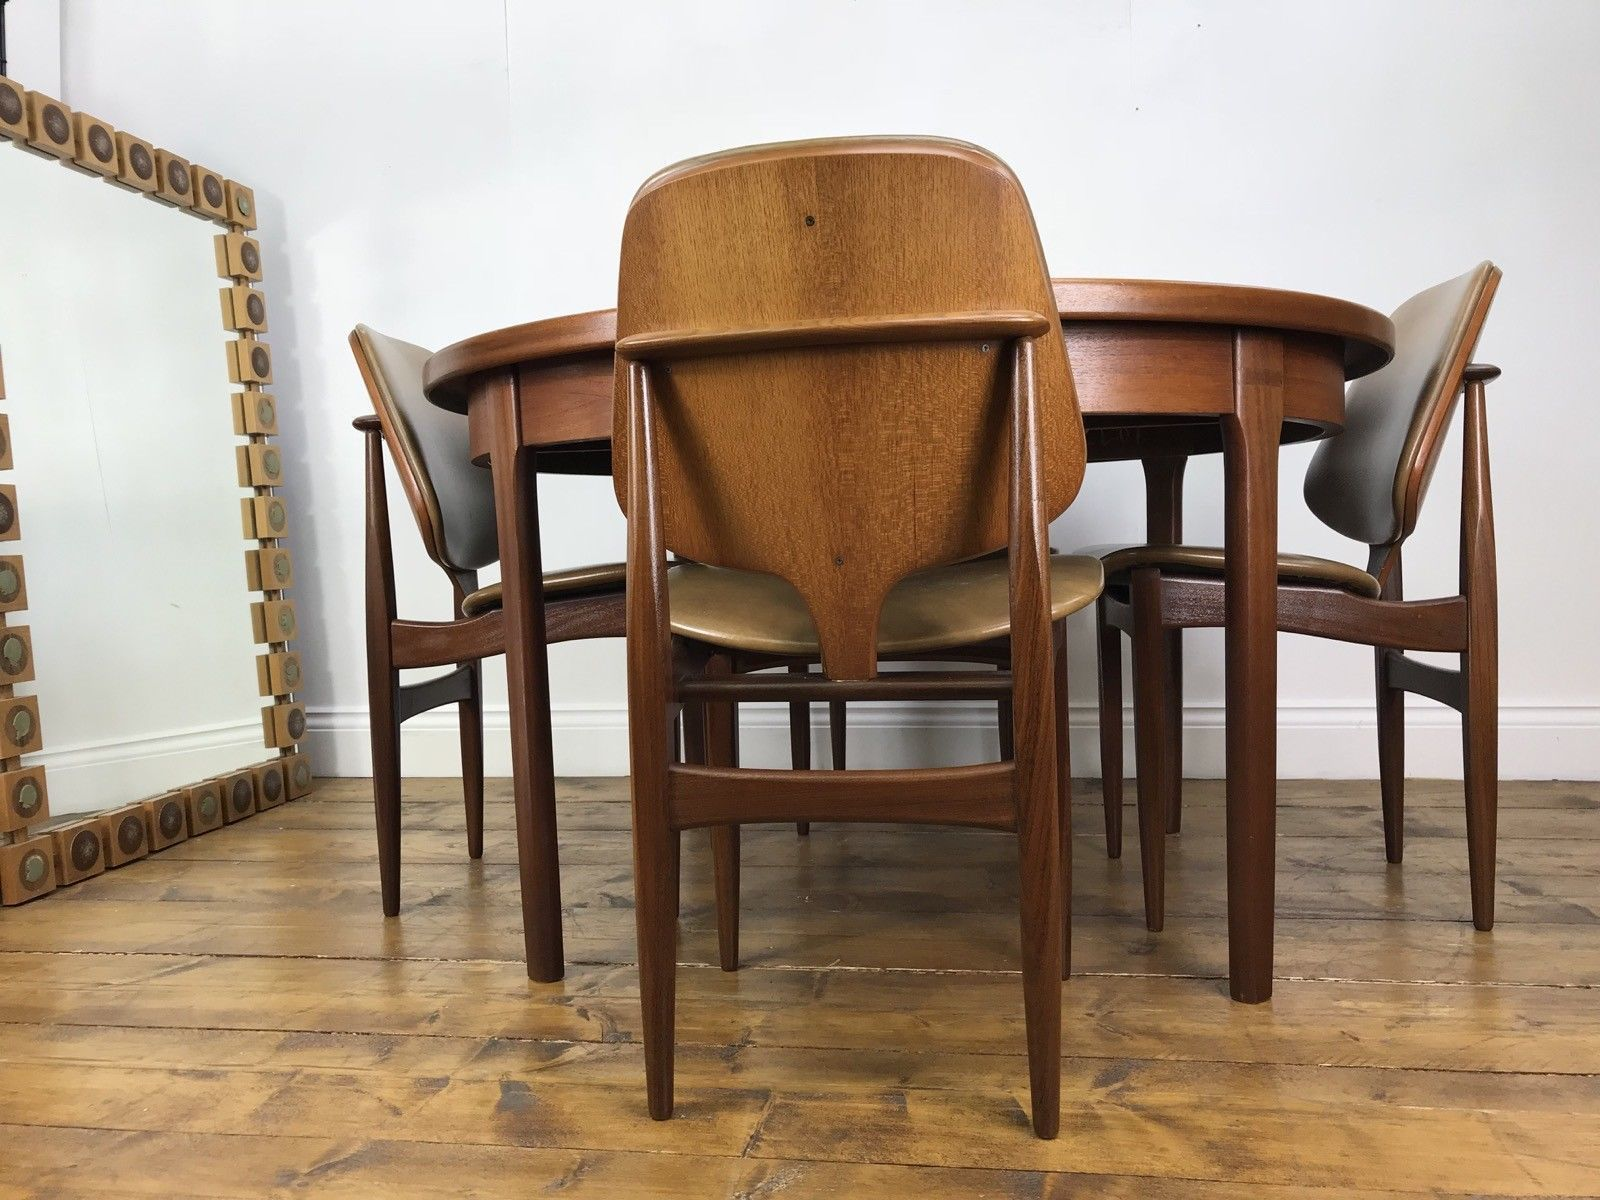 Astonishing 4X Eon Dining Chairs And Table Retro Vintage Extending Teak Elliots Of Newbury Pabps2019 Chair Design Images Pabps2019Com